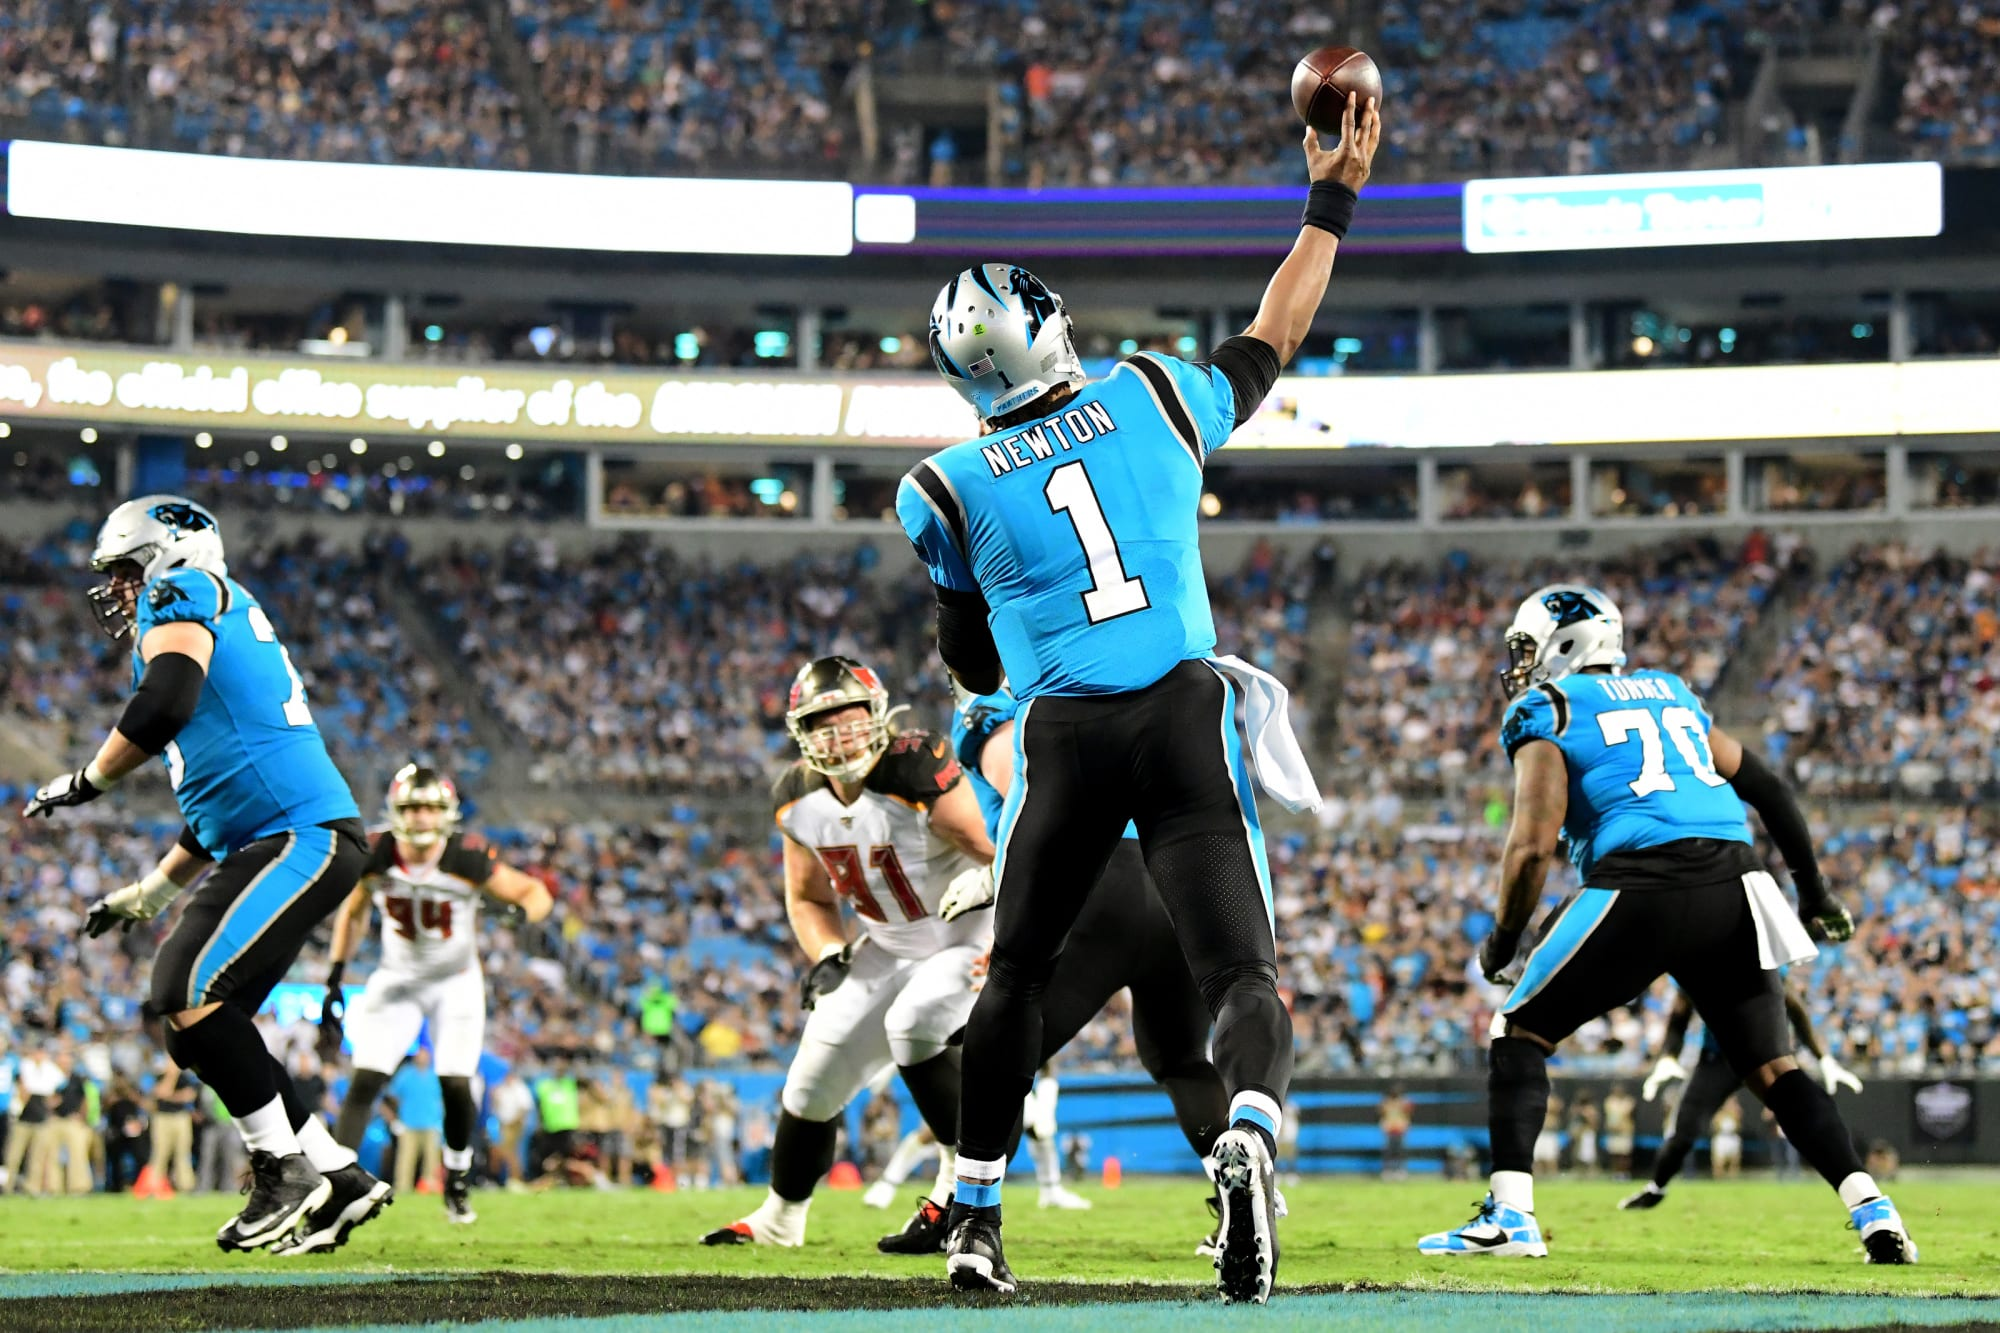 New England Patriots: Cam Newton is ready to strike fear in AFC opponents